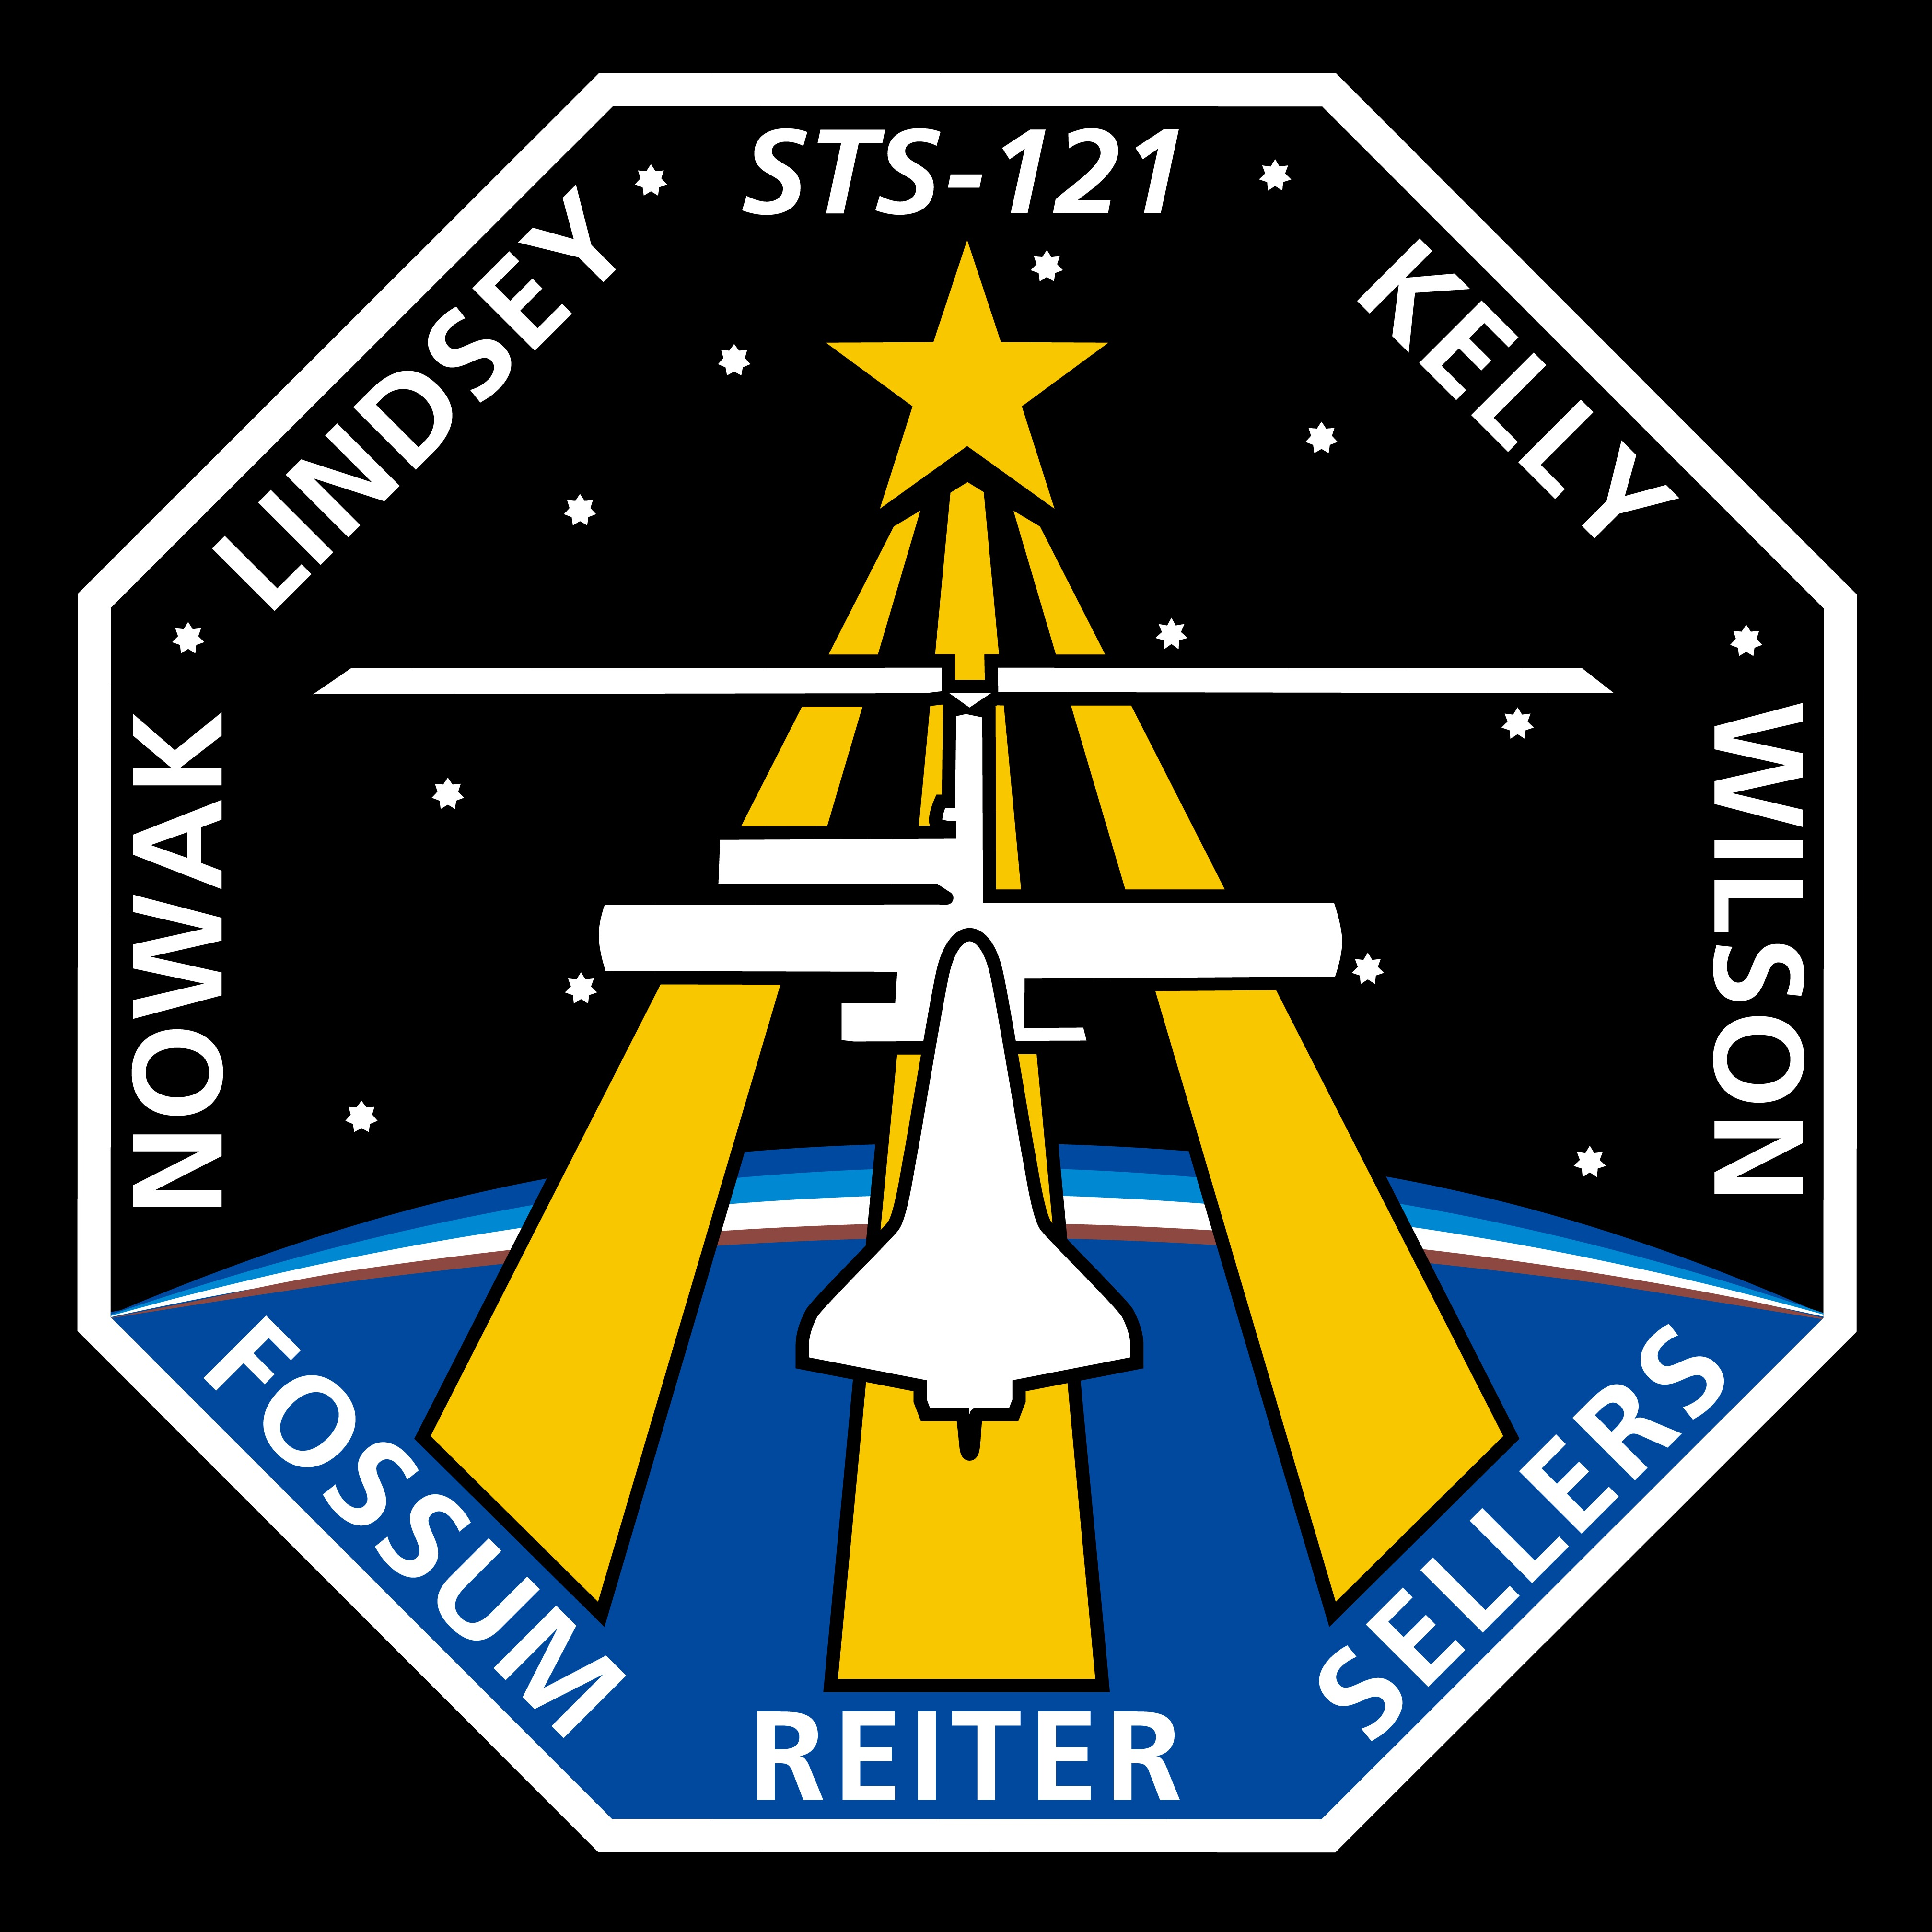 STS-121 Delivers Thomas Reiter – Nothing in Particular Blog